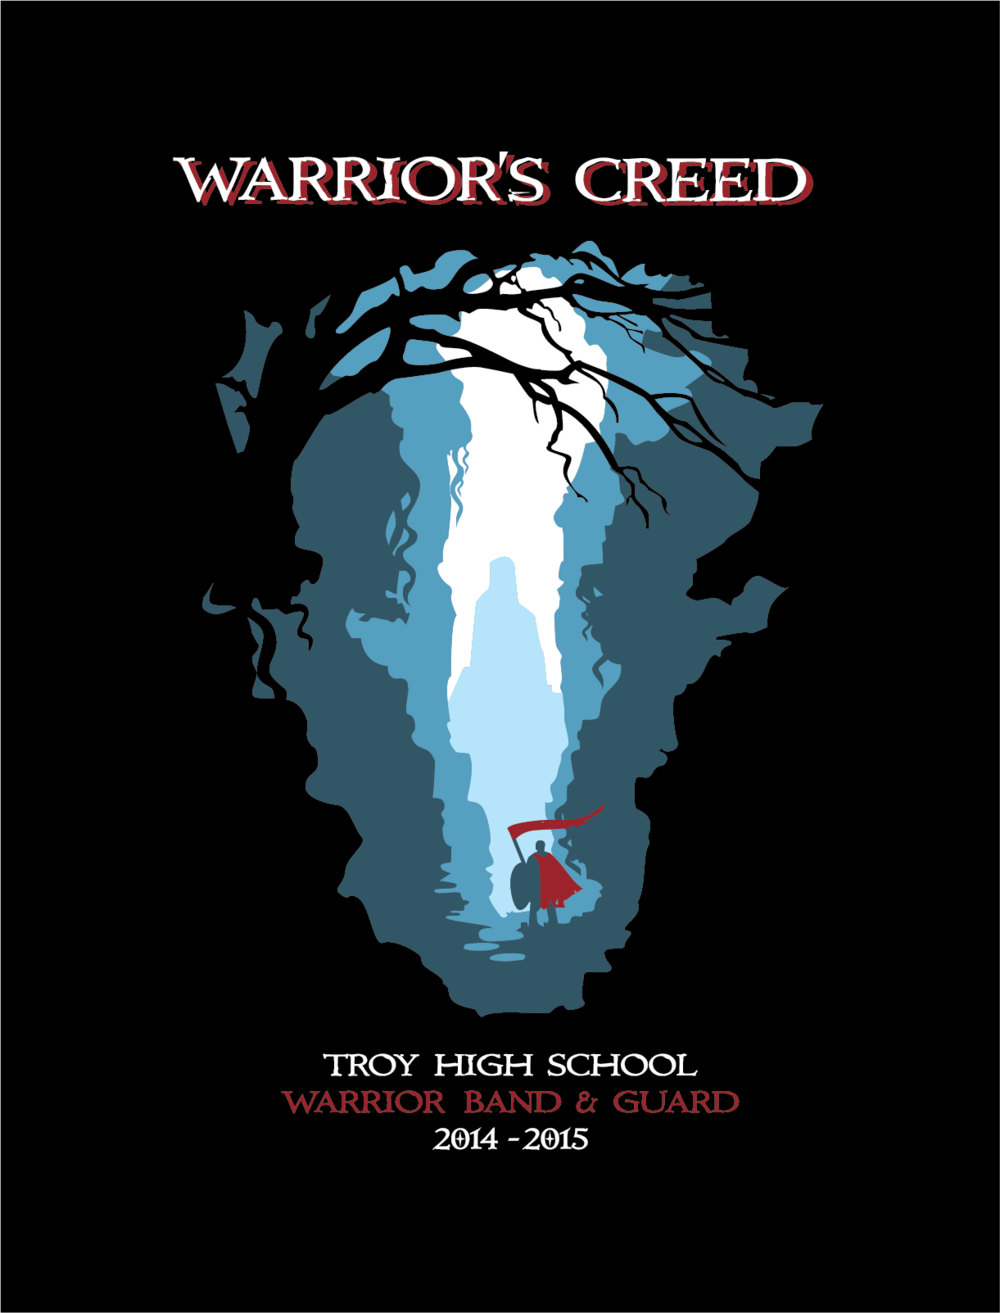 warriors creed final 03.png